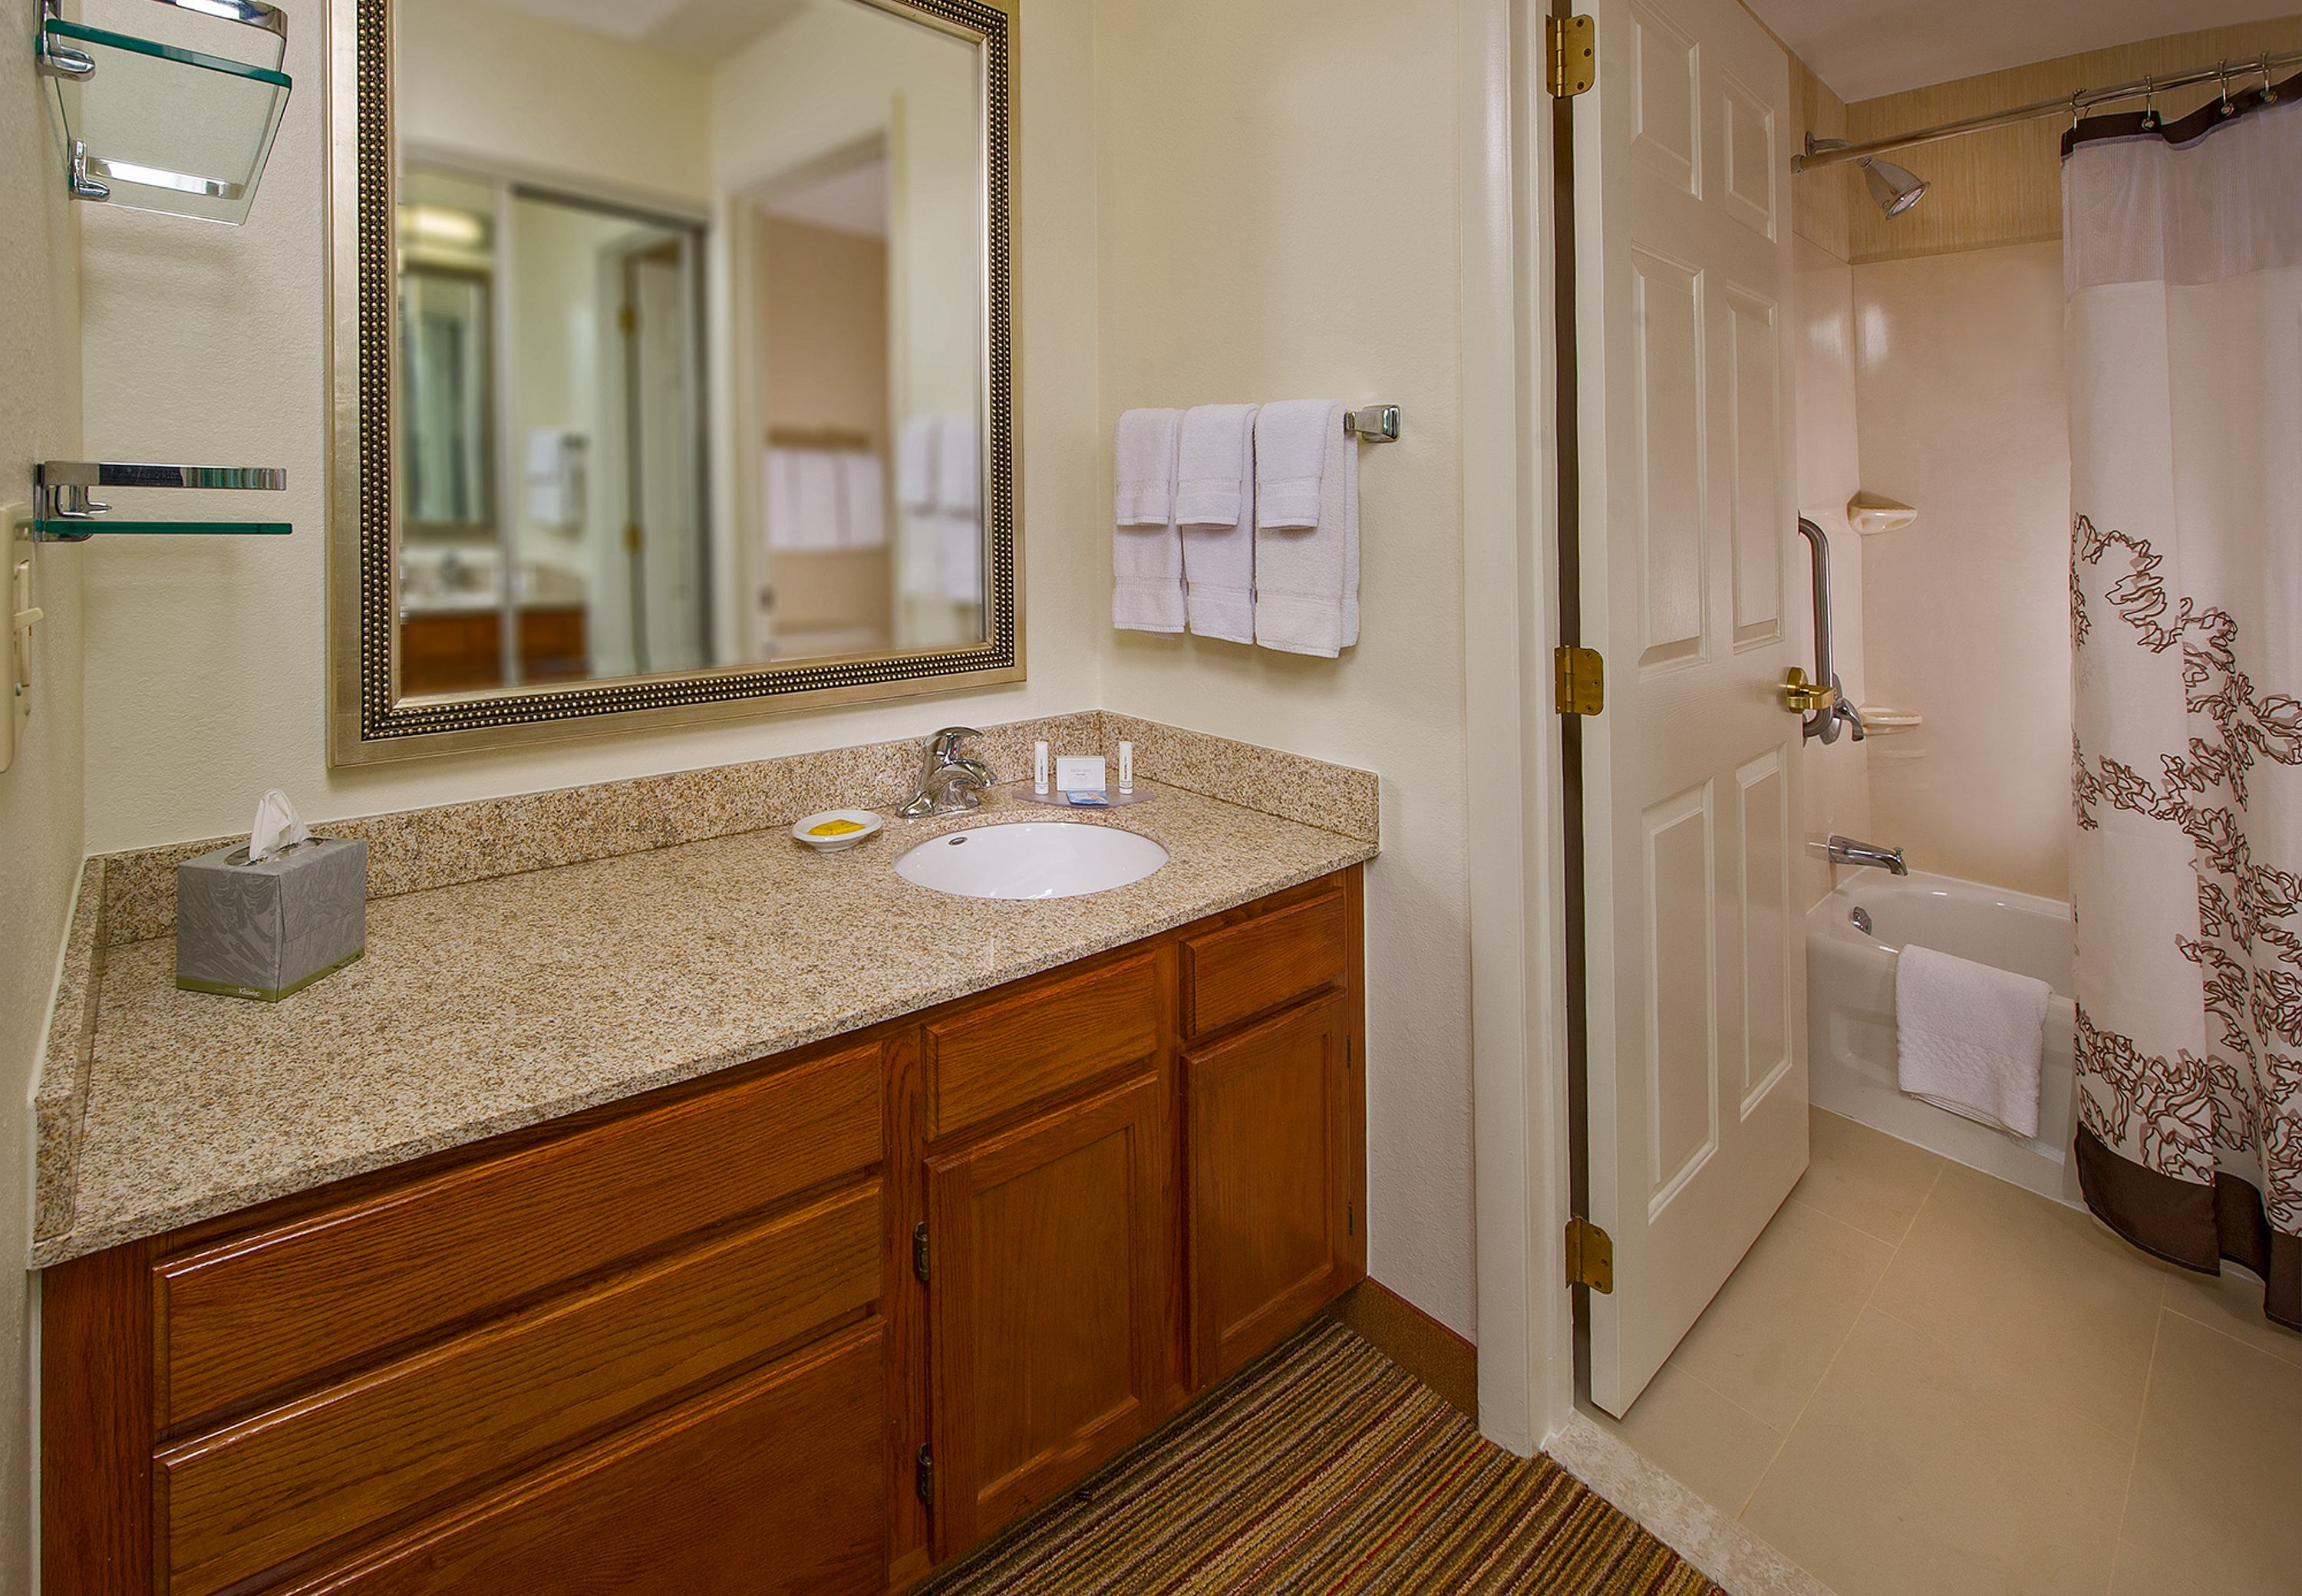 Residence Inn by Marriott Raleigh Cary image 0